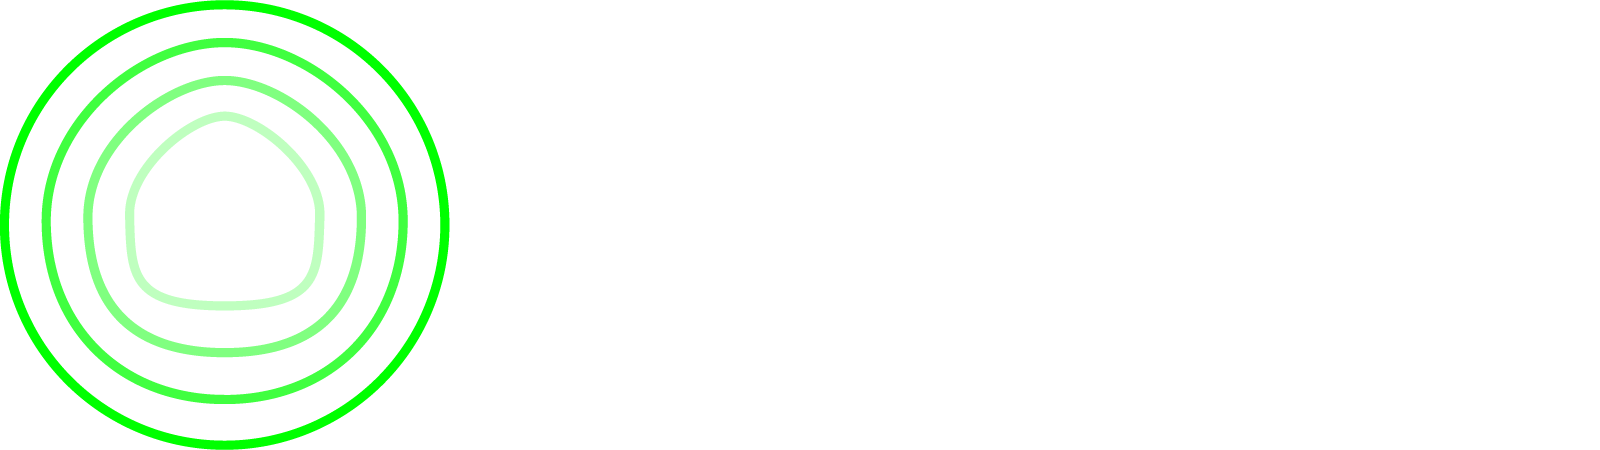 BONNECABANE